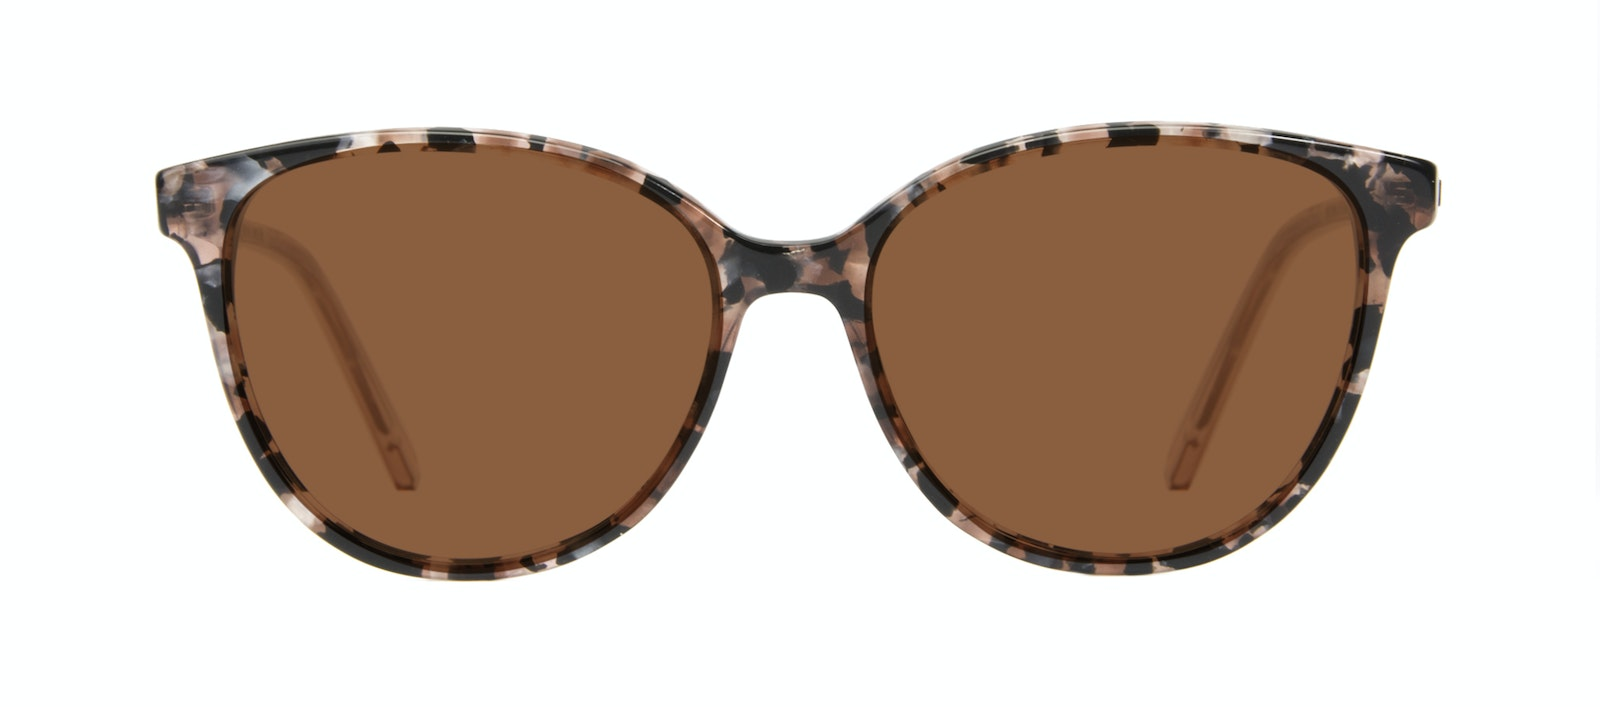 Affordable Fashion Glasses Round Sunglasses Women Imagine II Pink Tortoise Front